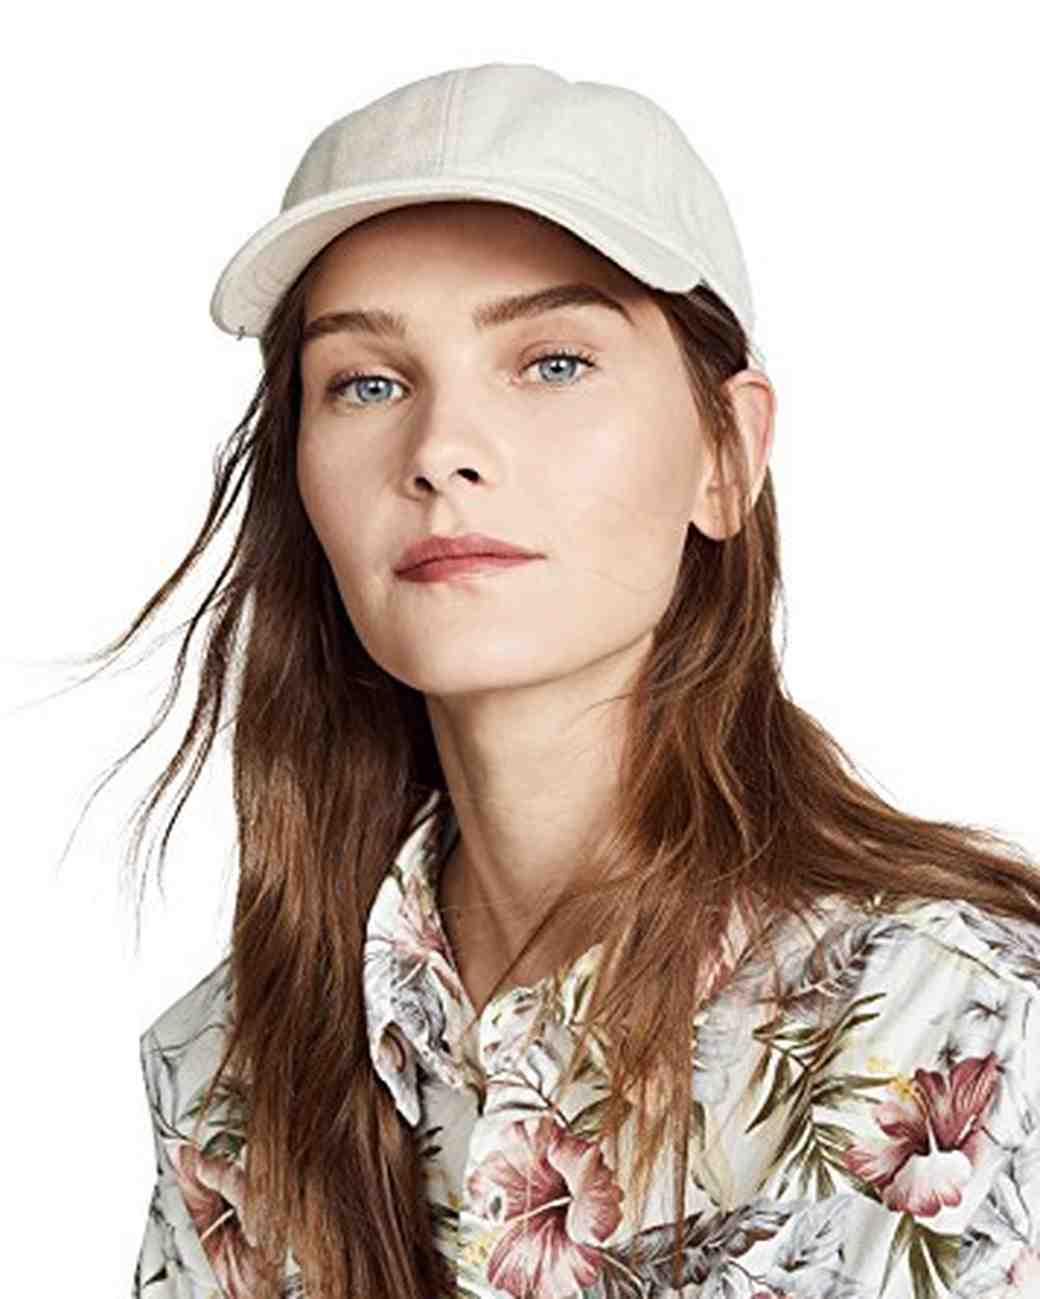 Linen Wedding Anniversary Gifts, Madewell Hat